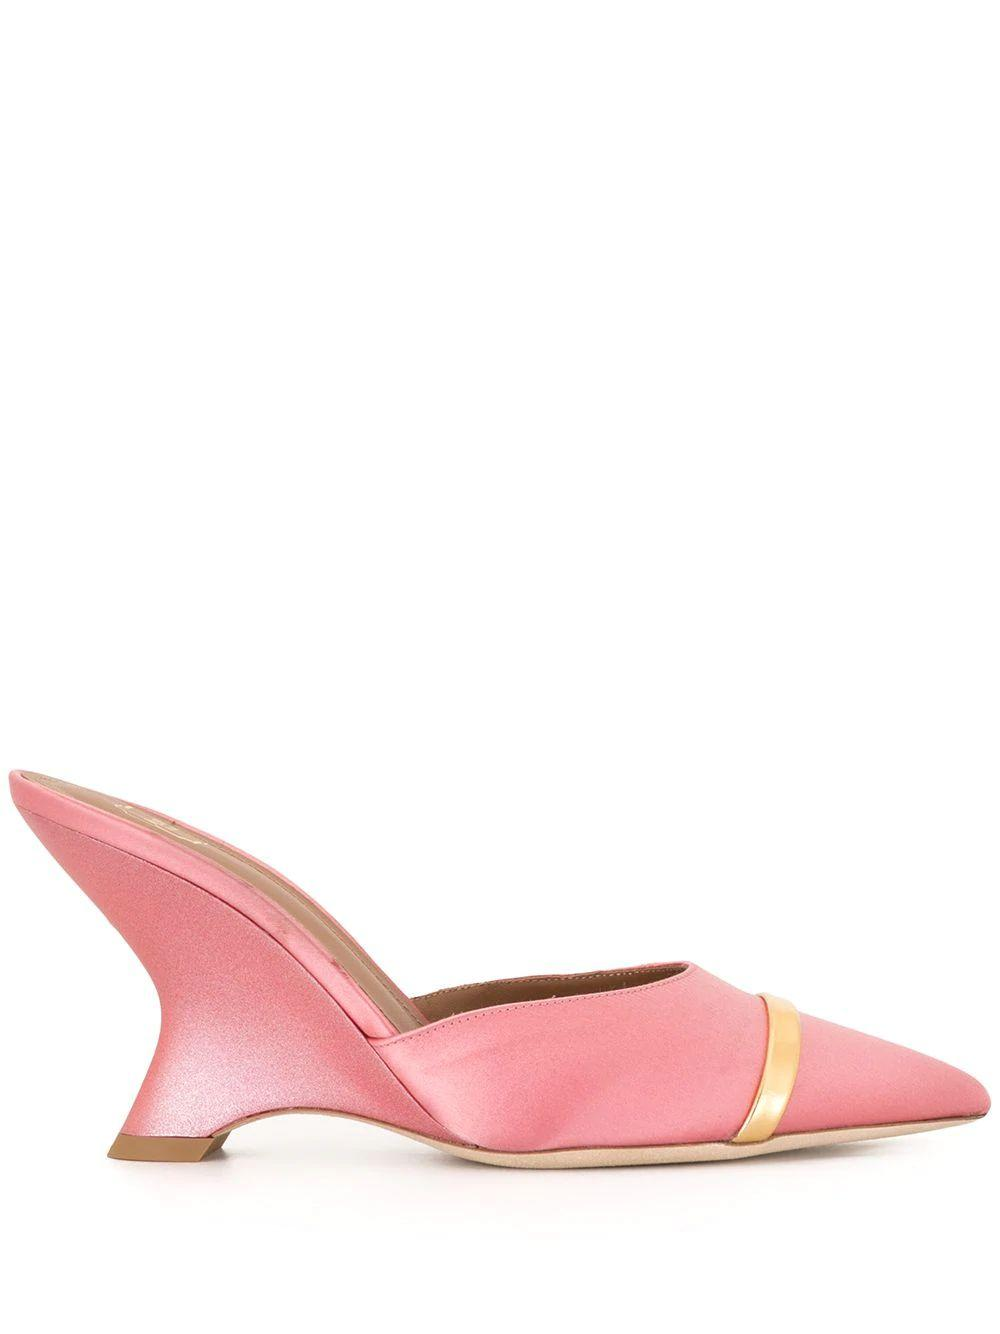 Satin Pointed Toe Wedge